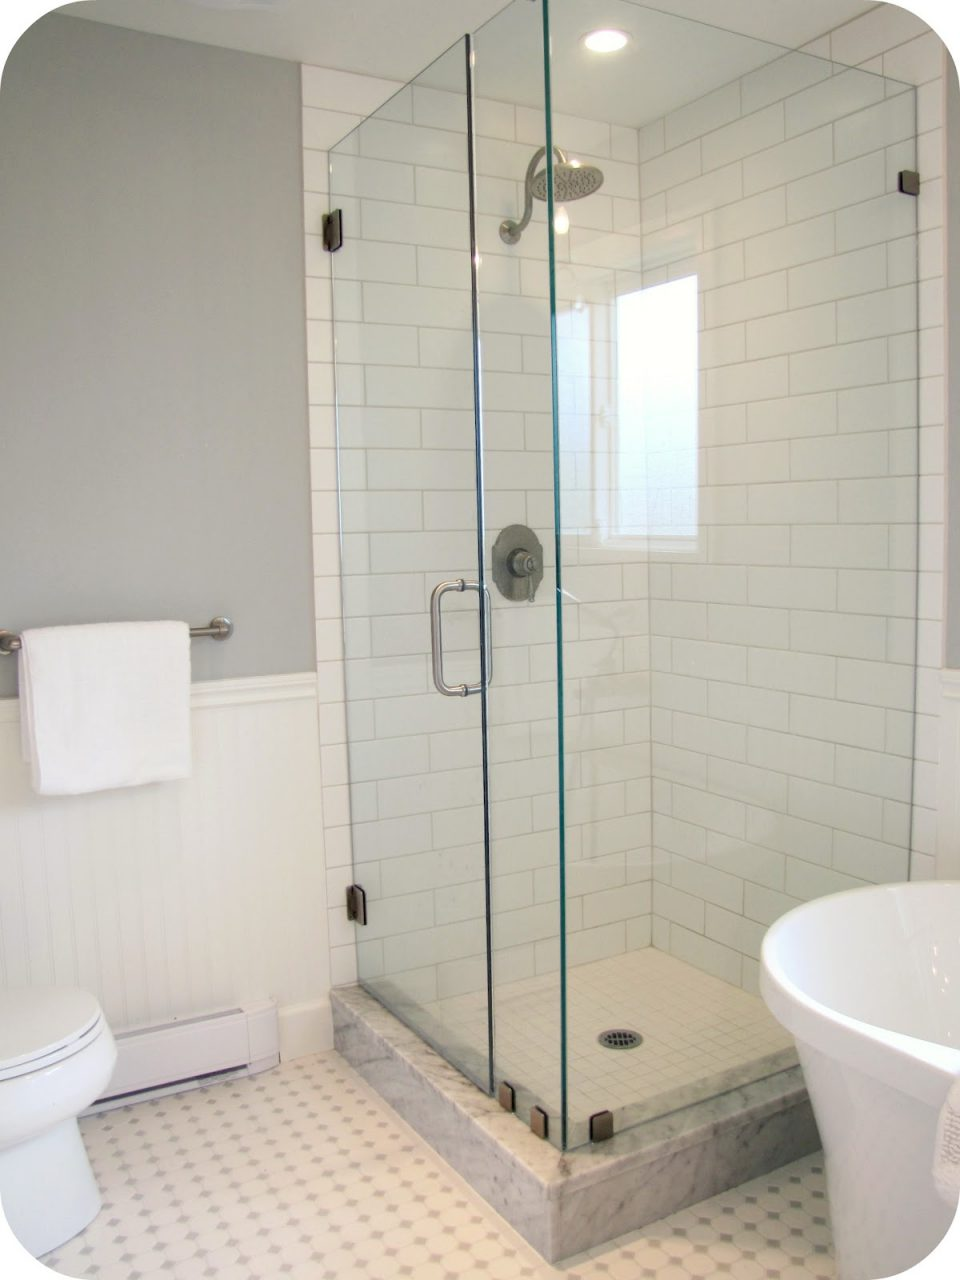 Glass Shower Room With White Wall Tile And Stainless Steel Shower On